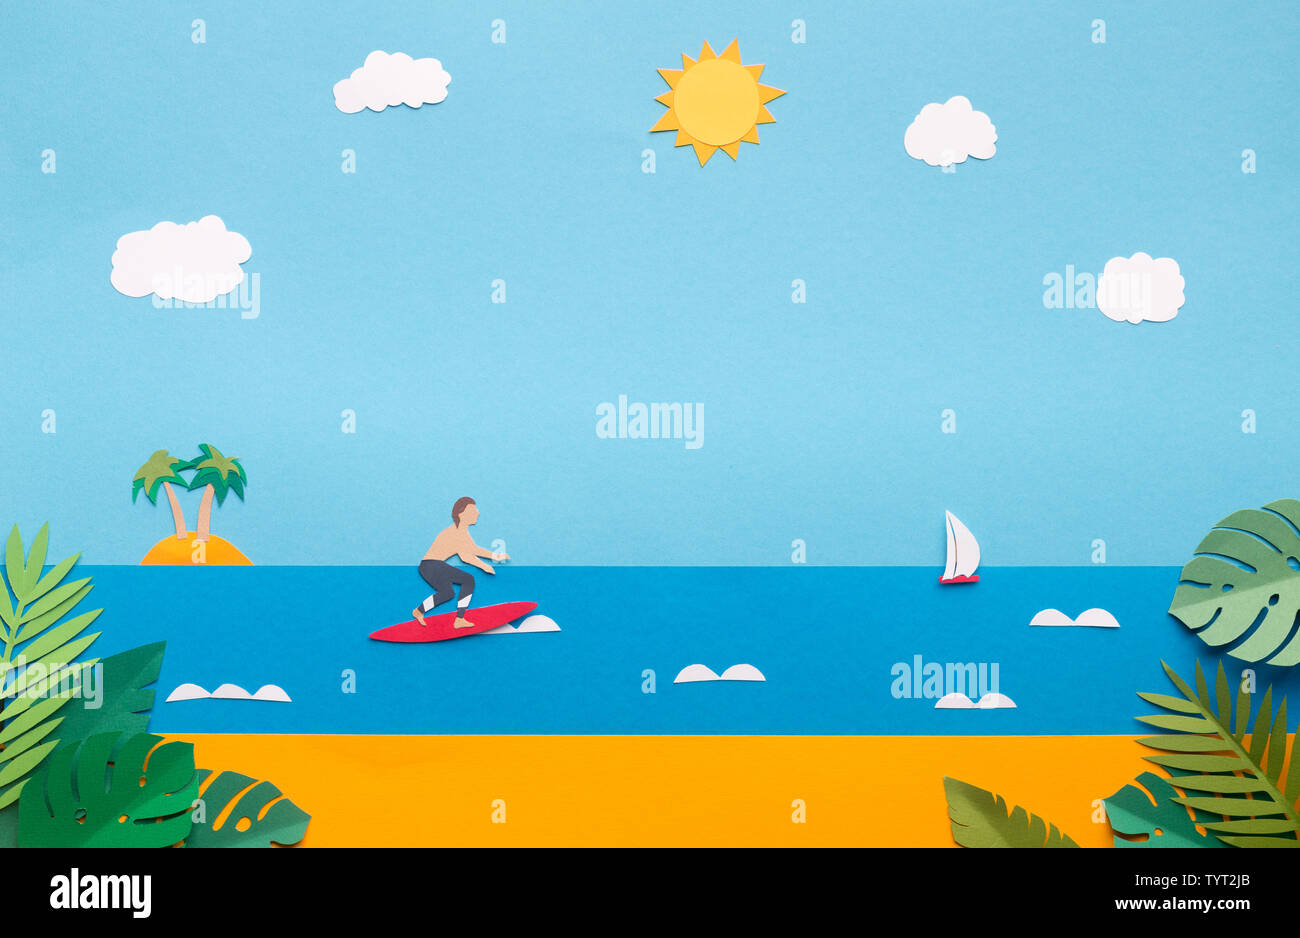 Summer Wallpaper With Sandy Beach Professional Surfer Stock